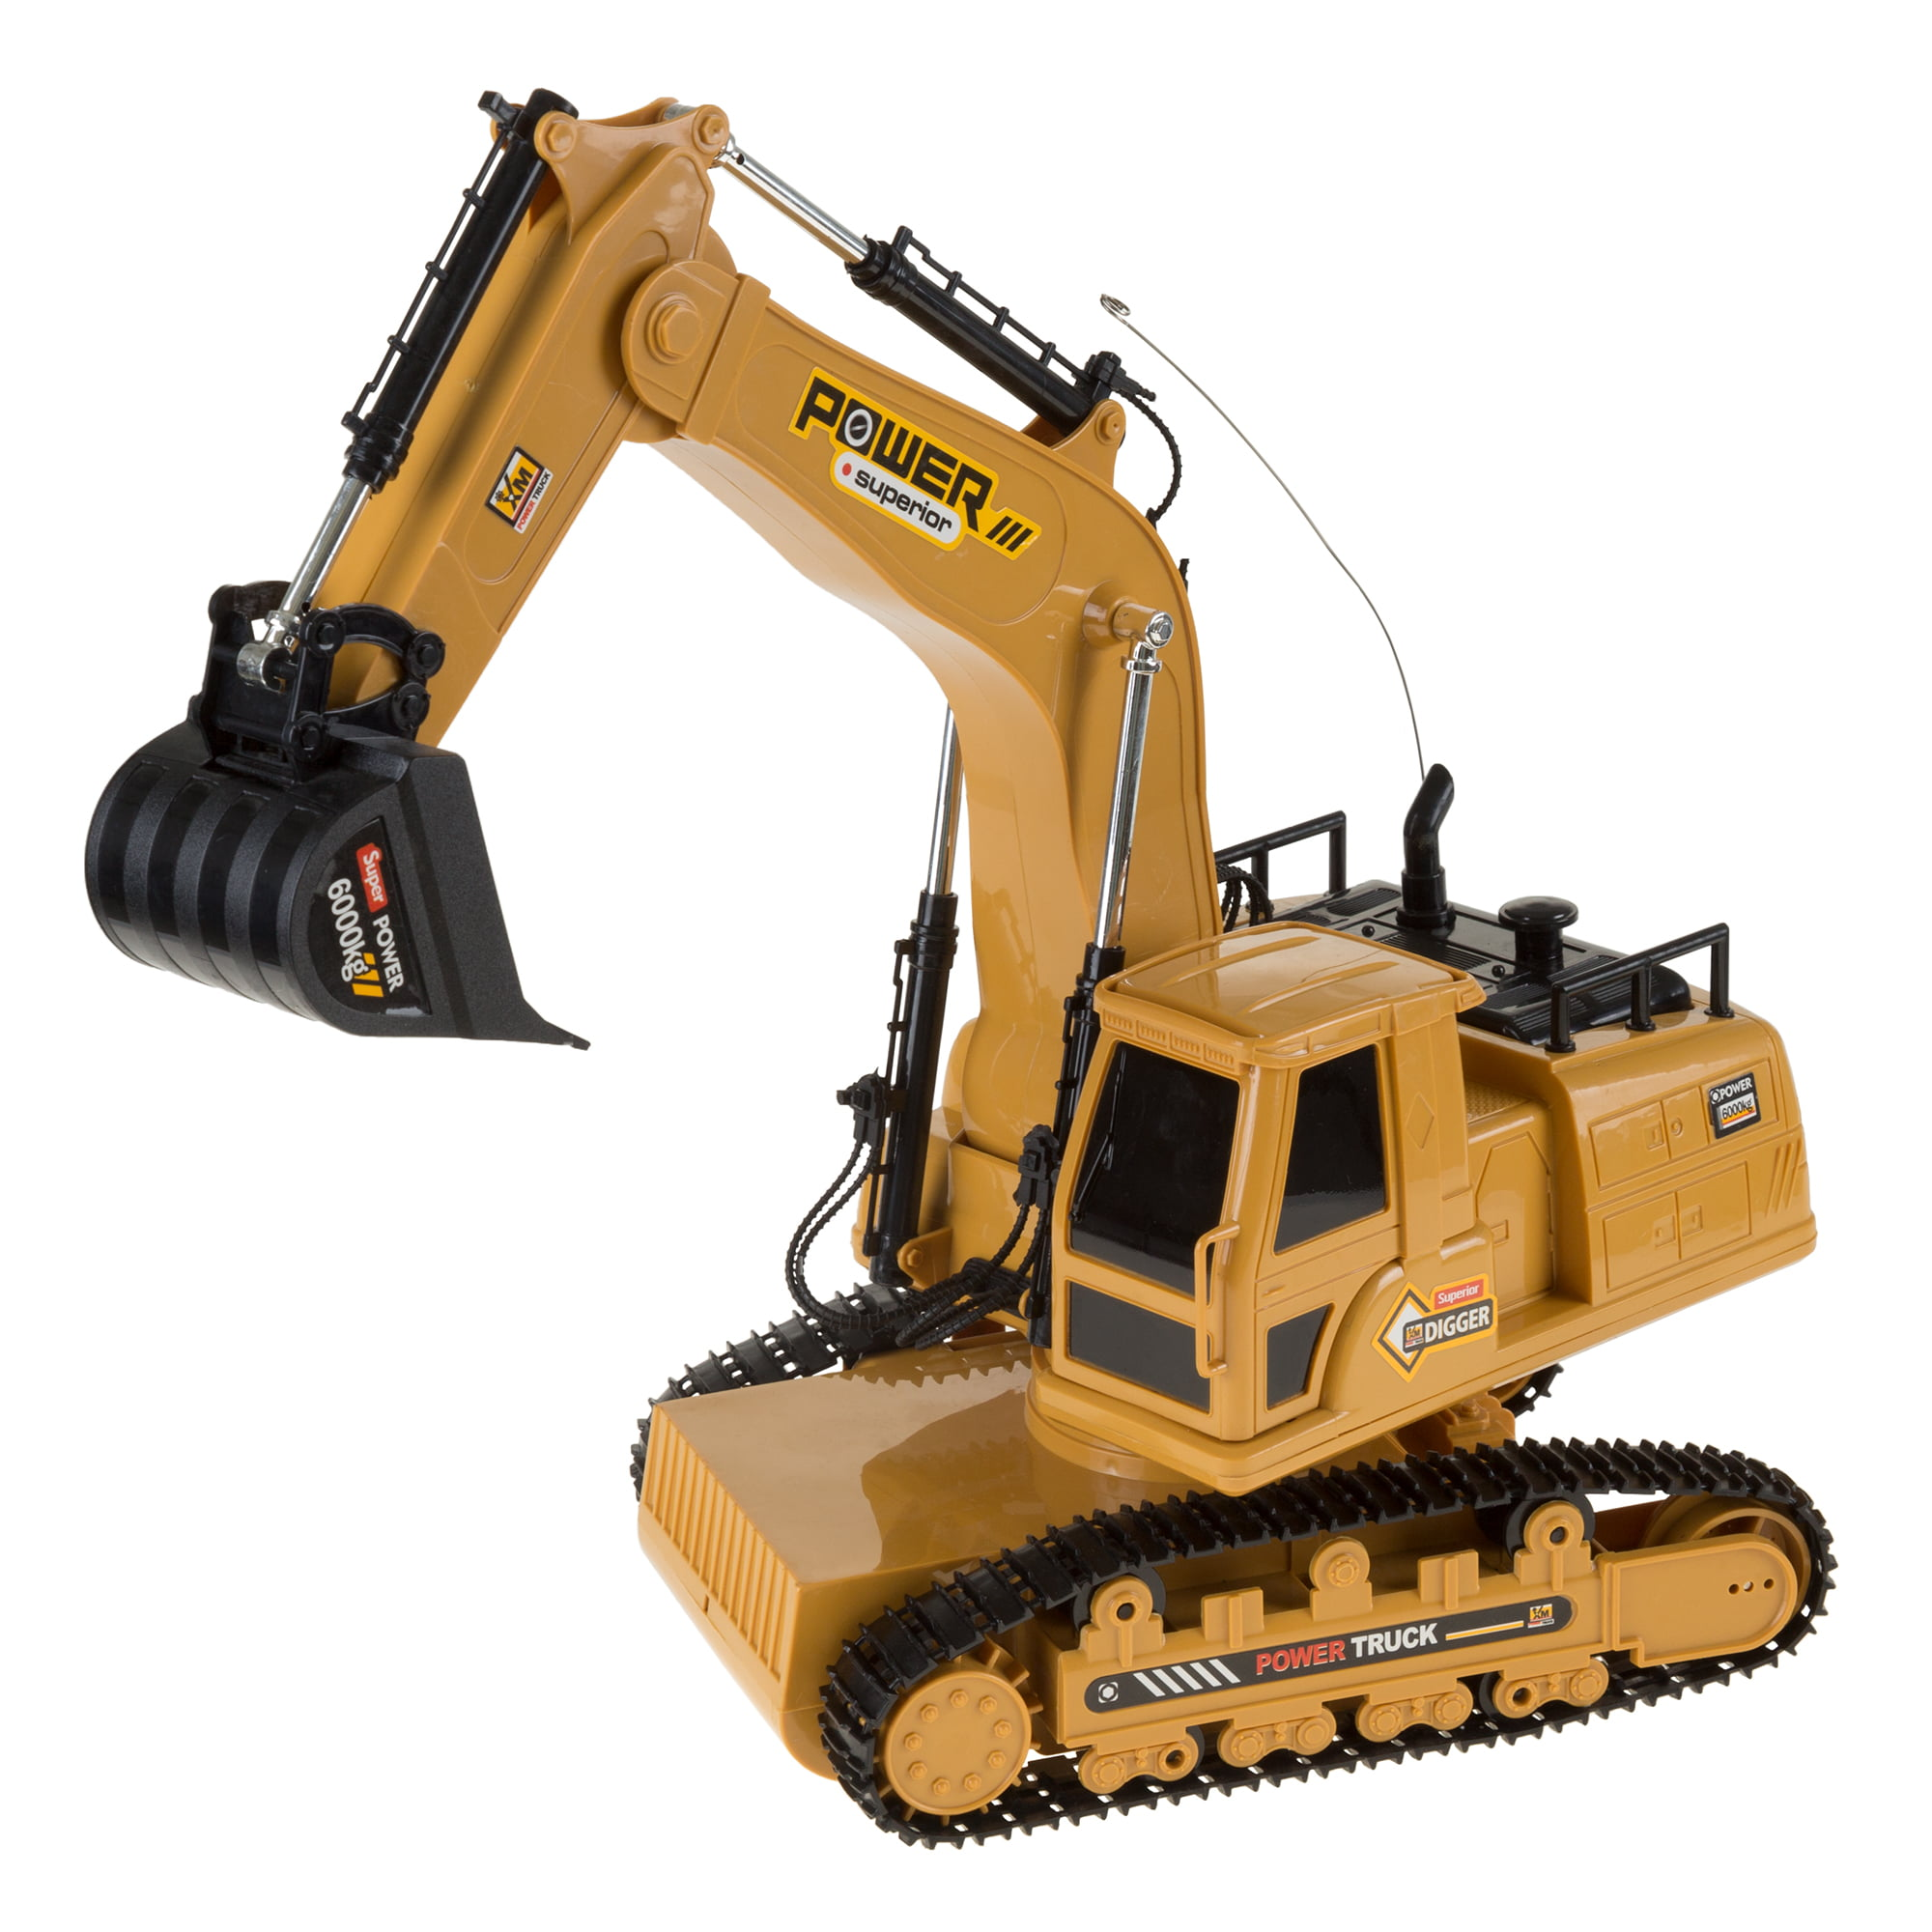 Remote Control Tractor Excavator Construction Toy with Movable Claw, Rechargeable Battery... by Trademark Global LLC